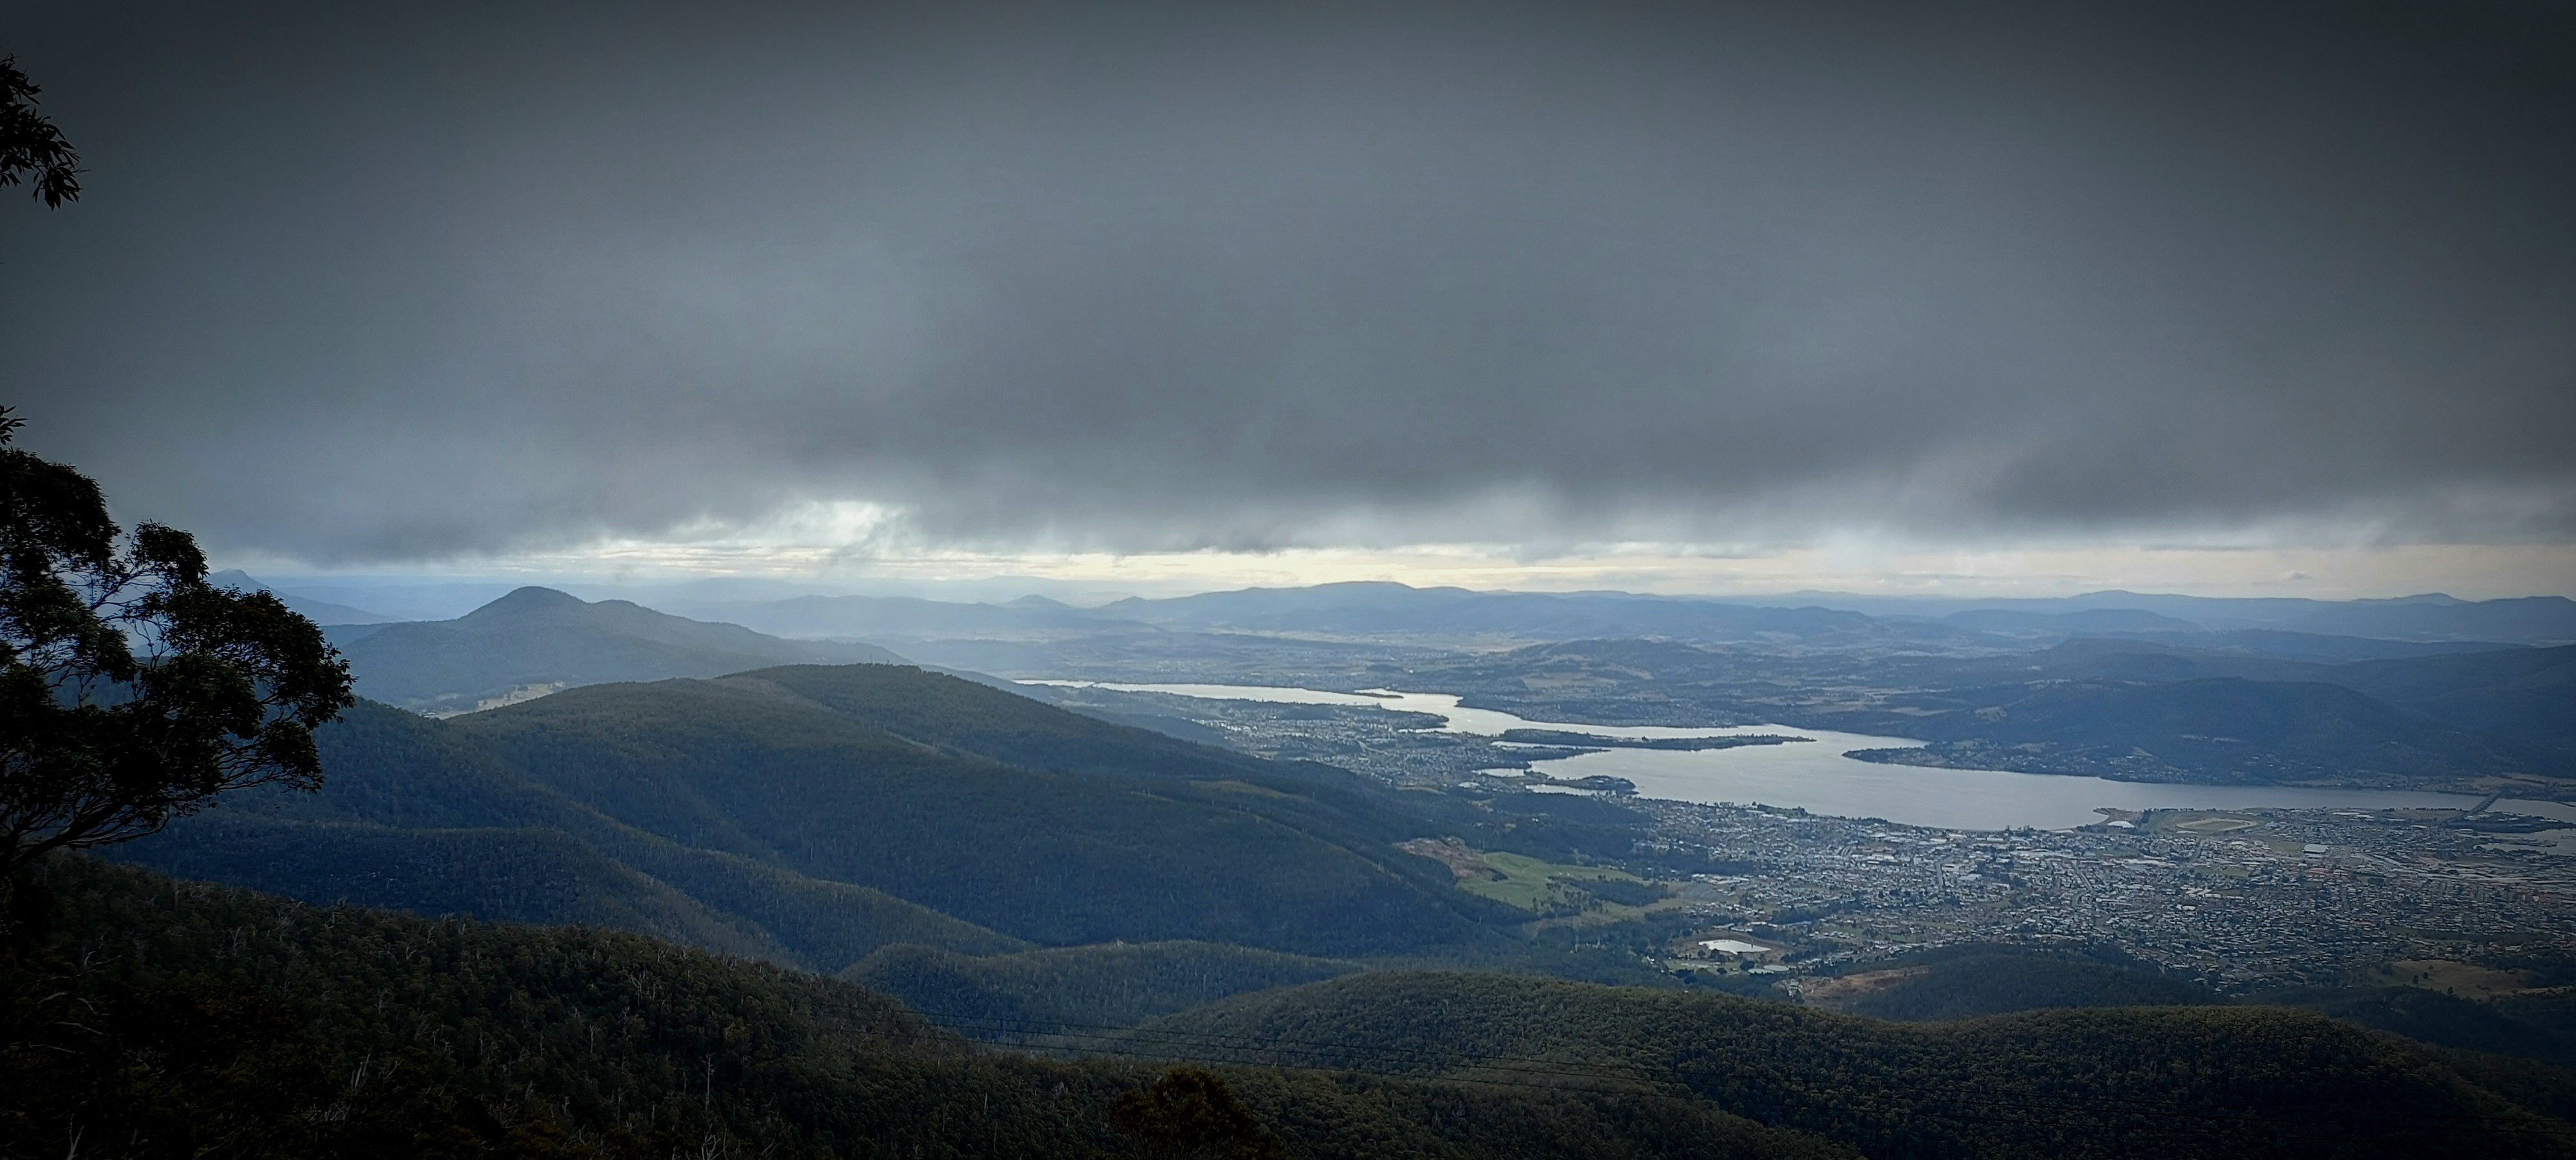 Image is a view of Hobart taken from the top of the mountain. The sky is heavy with cloud